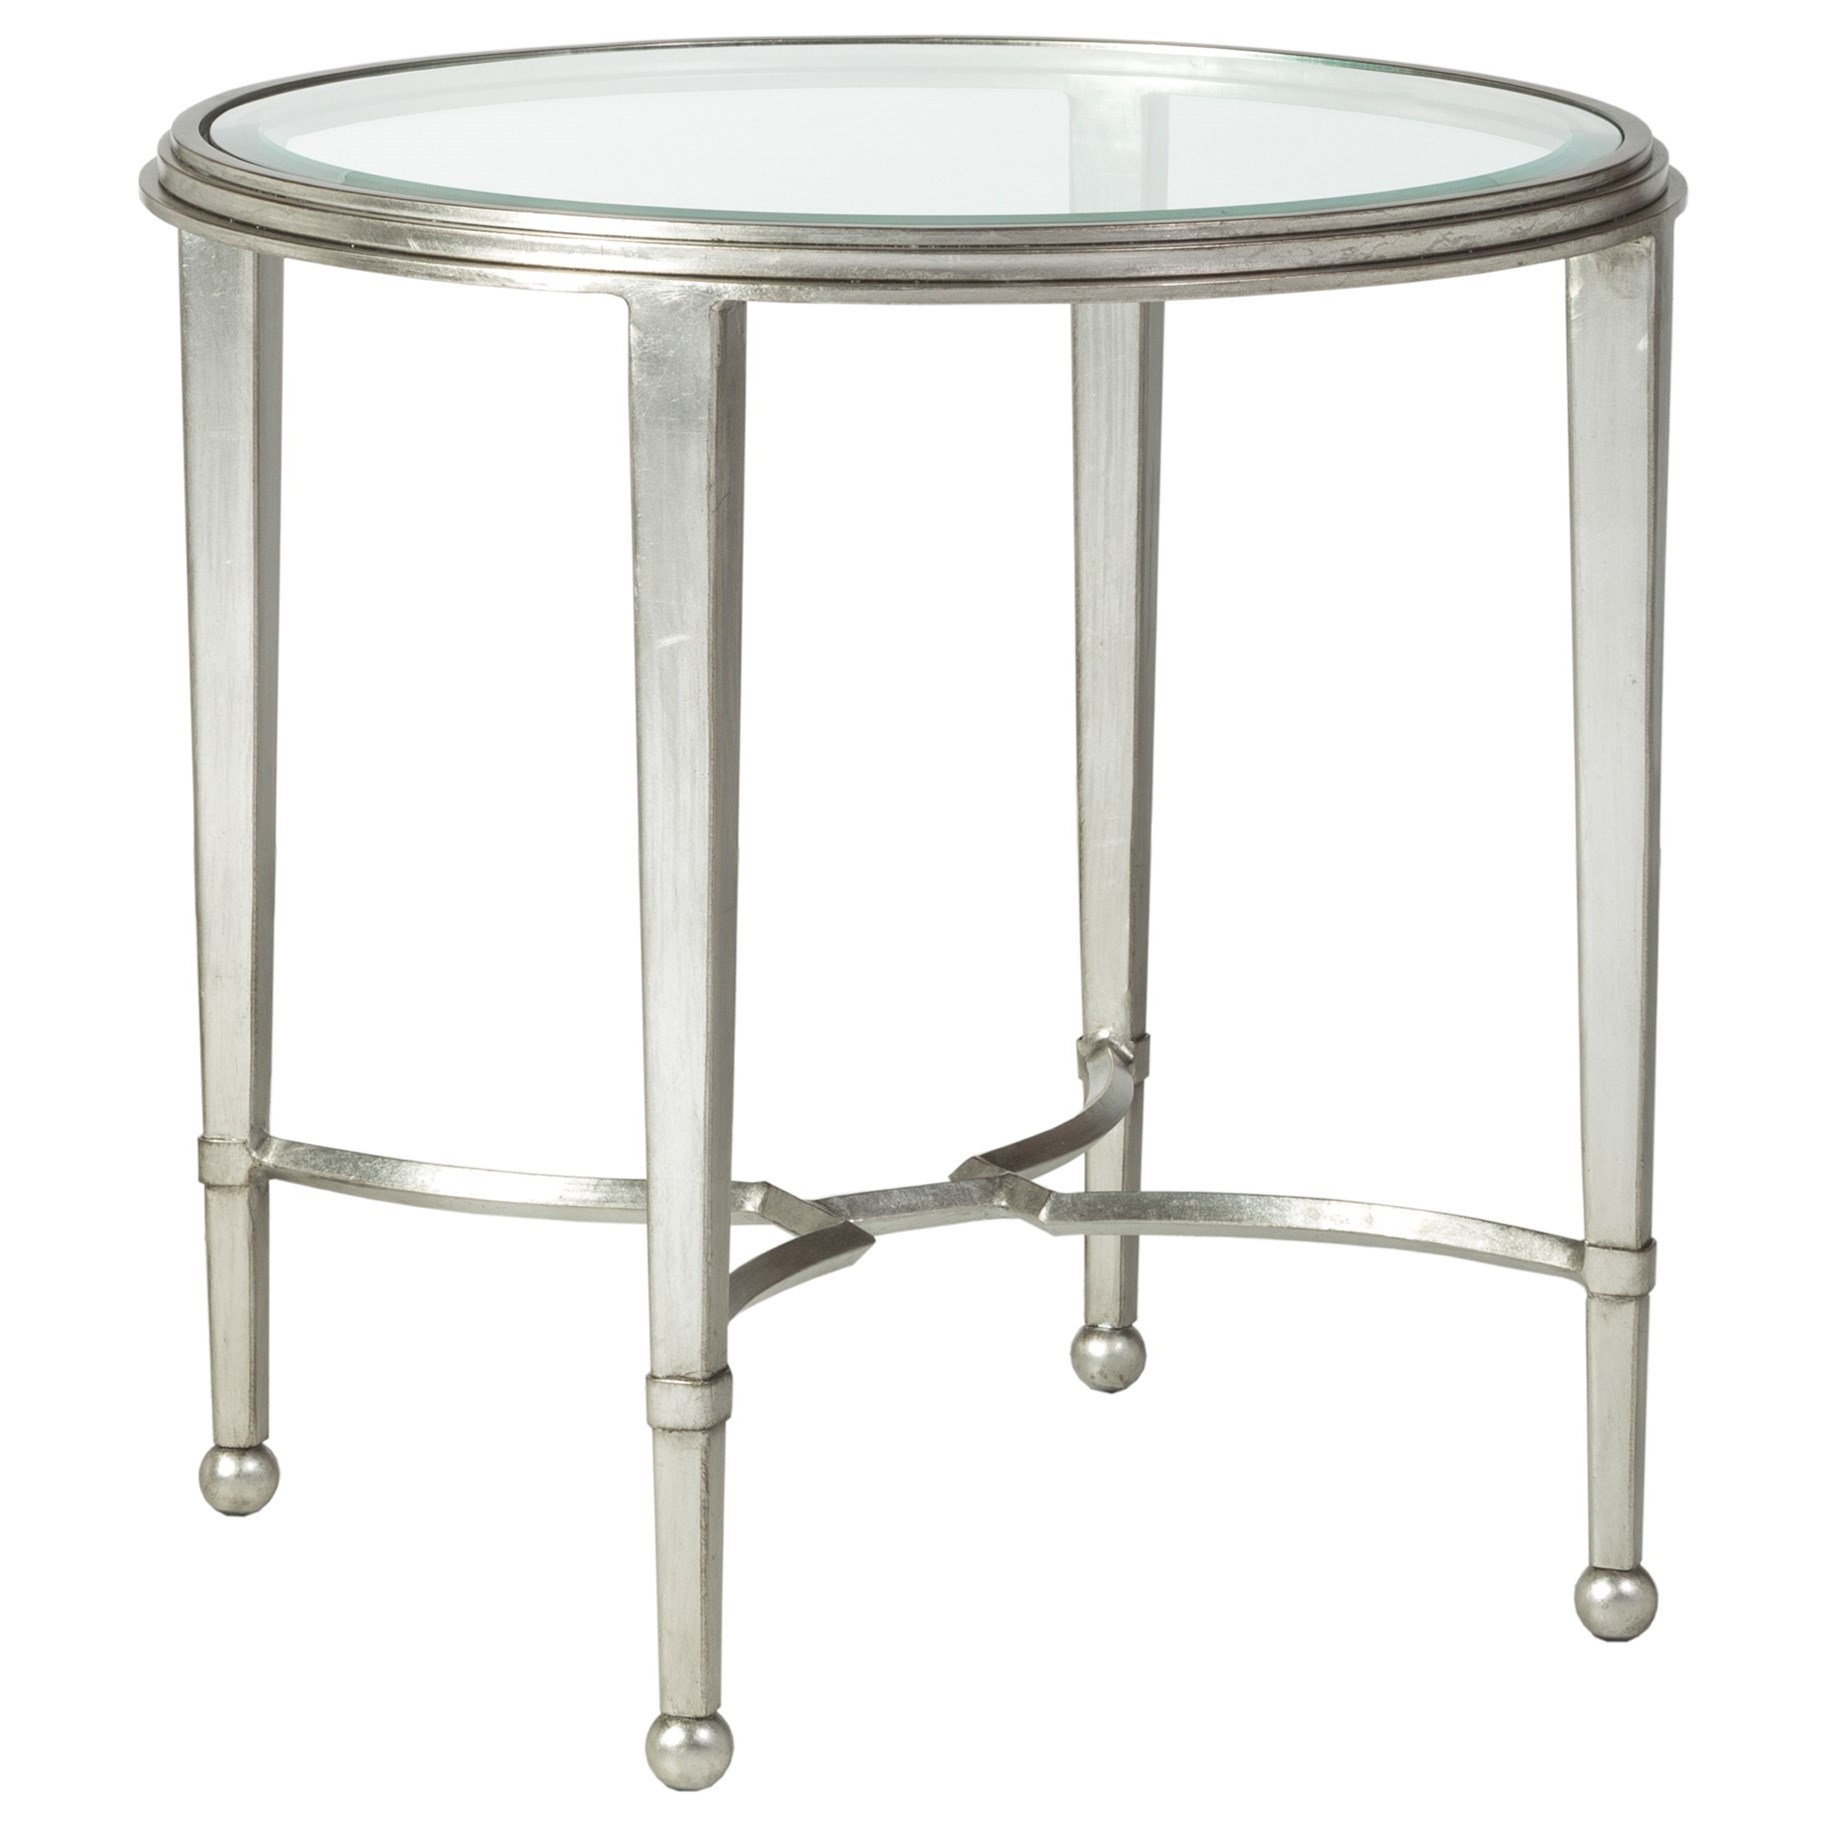 Artistica Metal Sangiovese Round End Table by Artistica at Alison Craig Home Furnishings